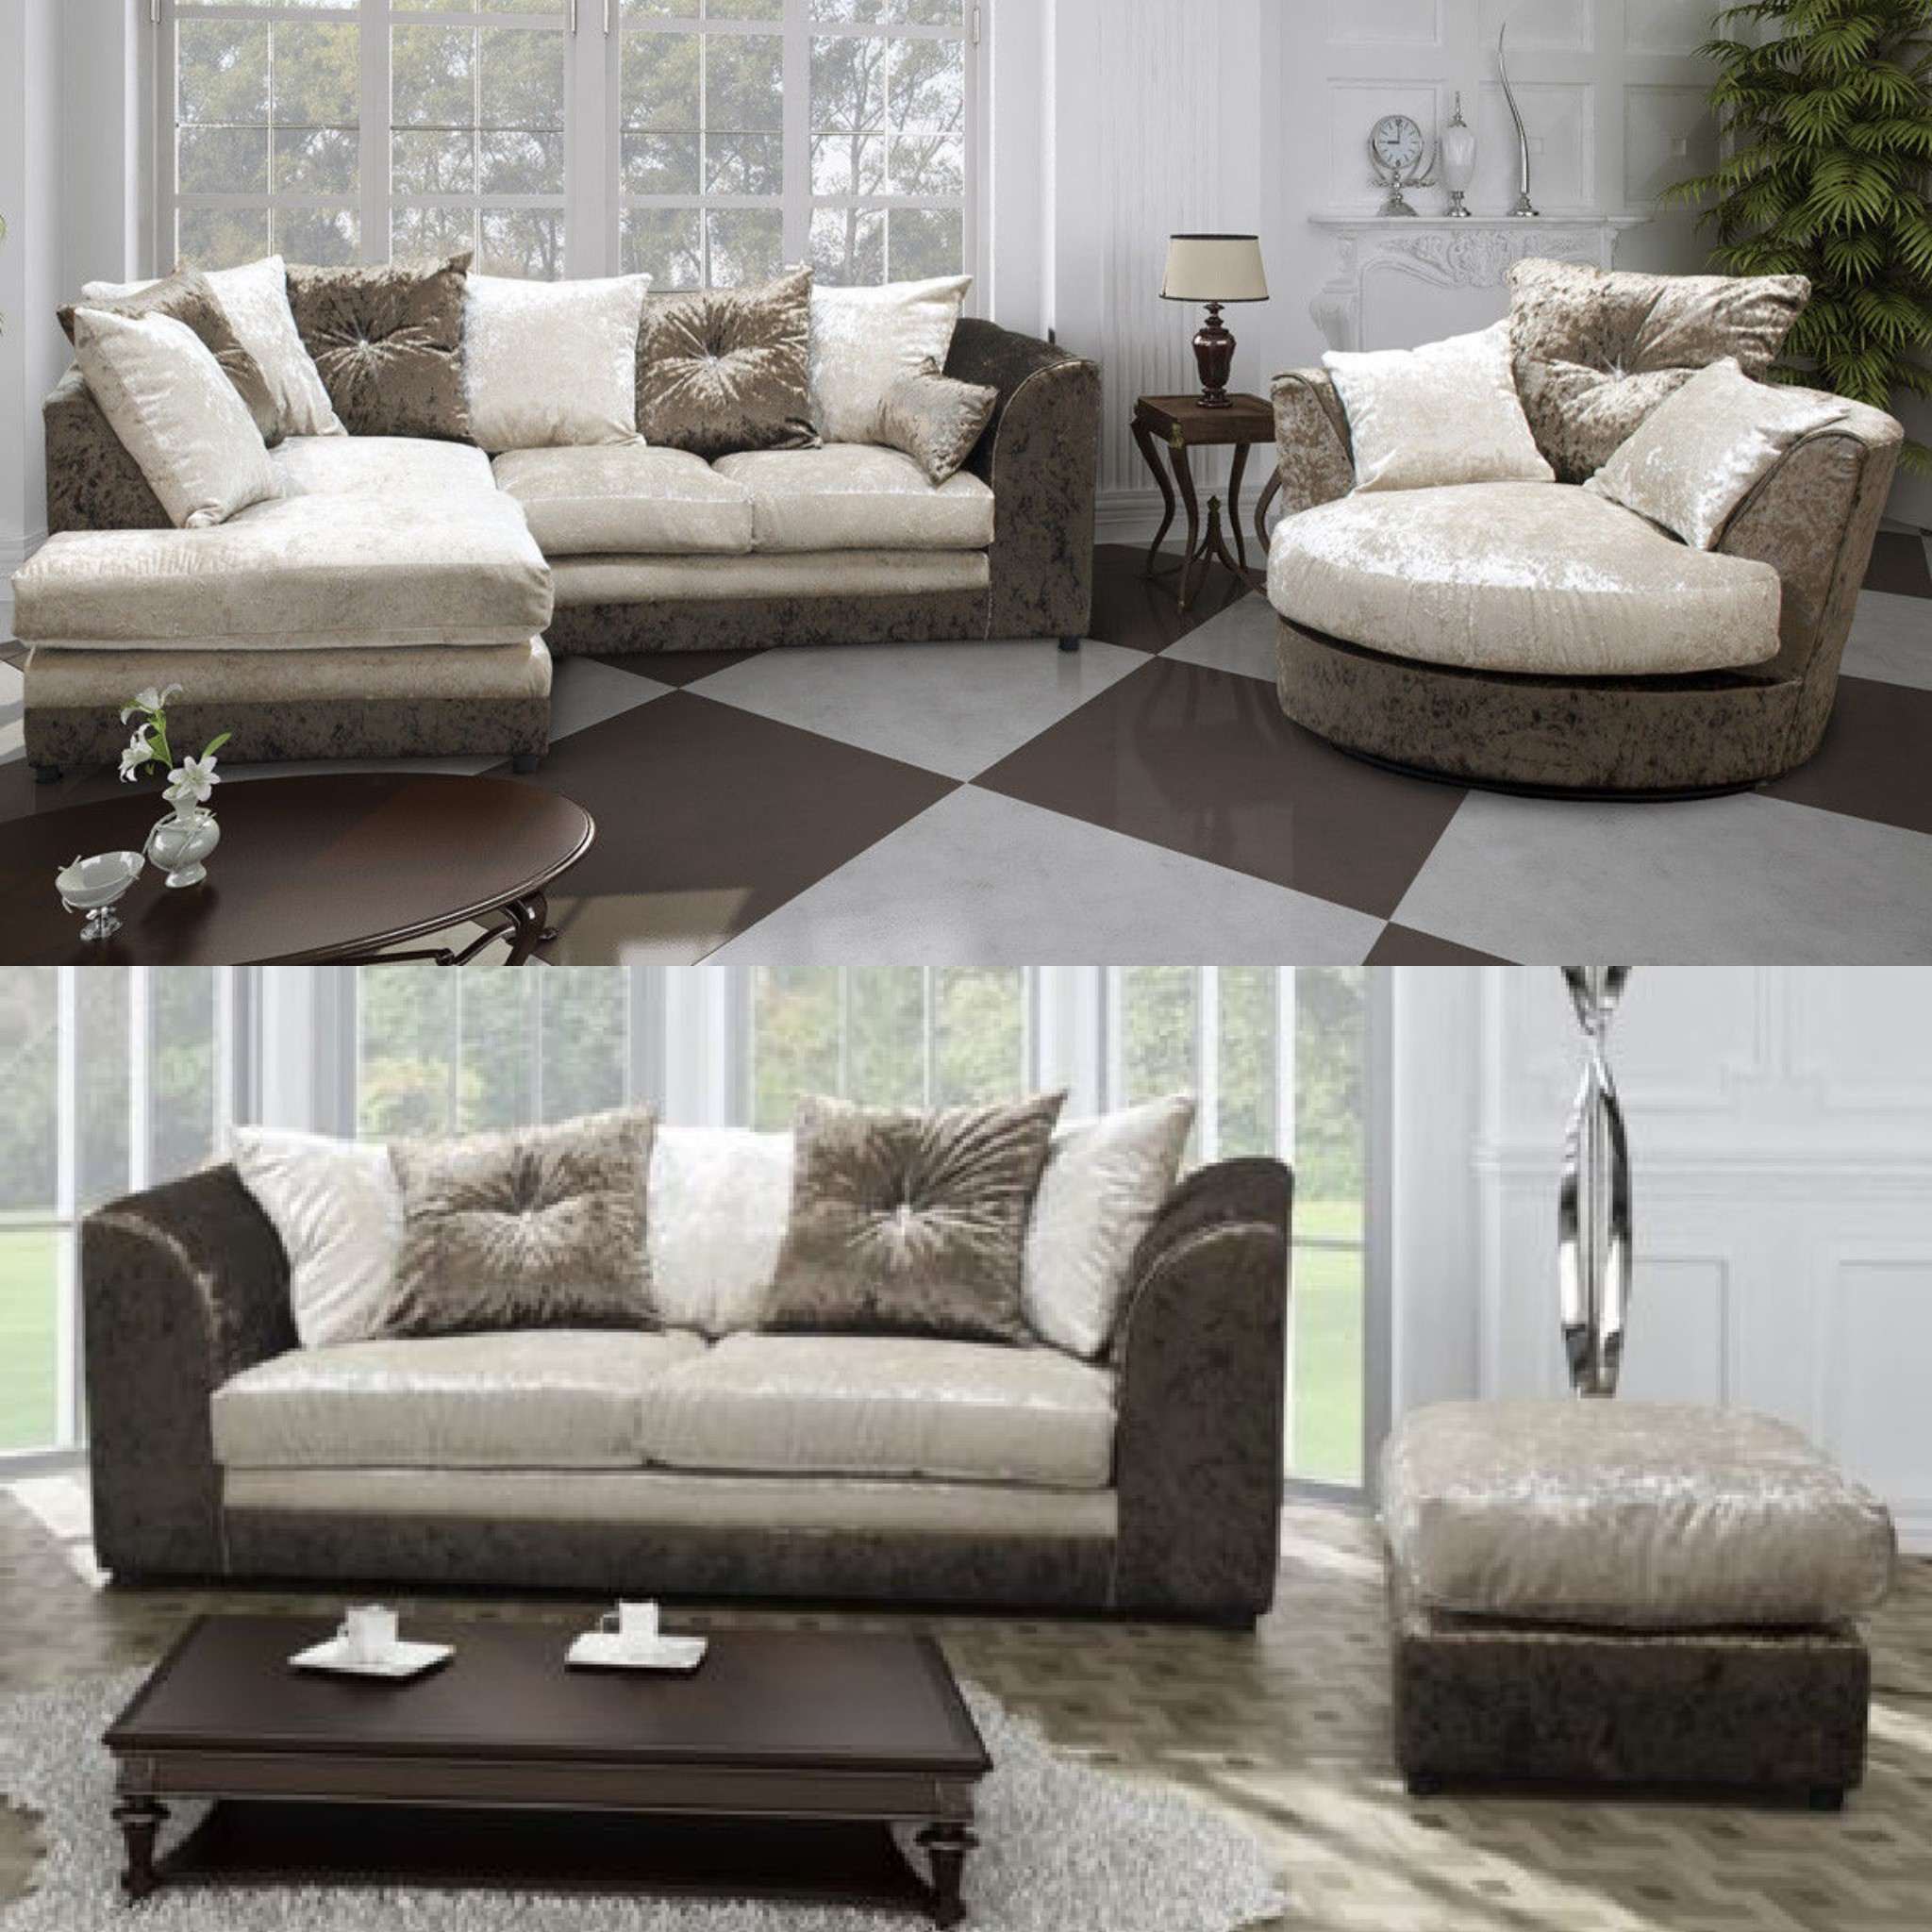 Widely Used Corner Sofa And Swivel Chairs Regarding Carlton Velvet Corner Sofa Set – Sofastorm (Gallery 8 of 20)